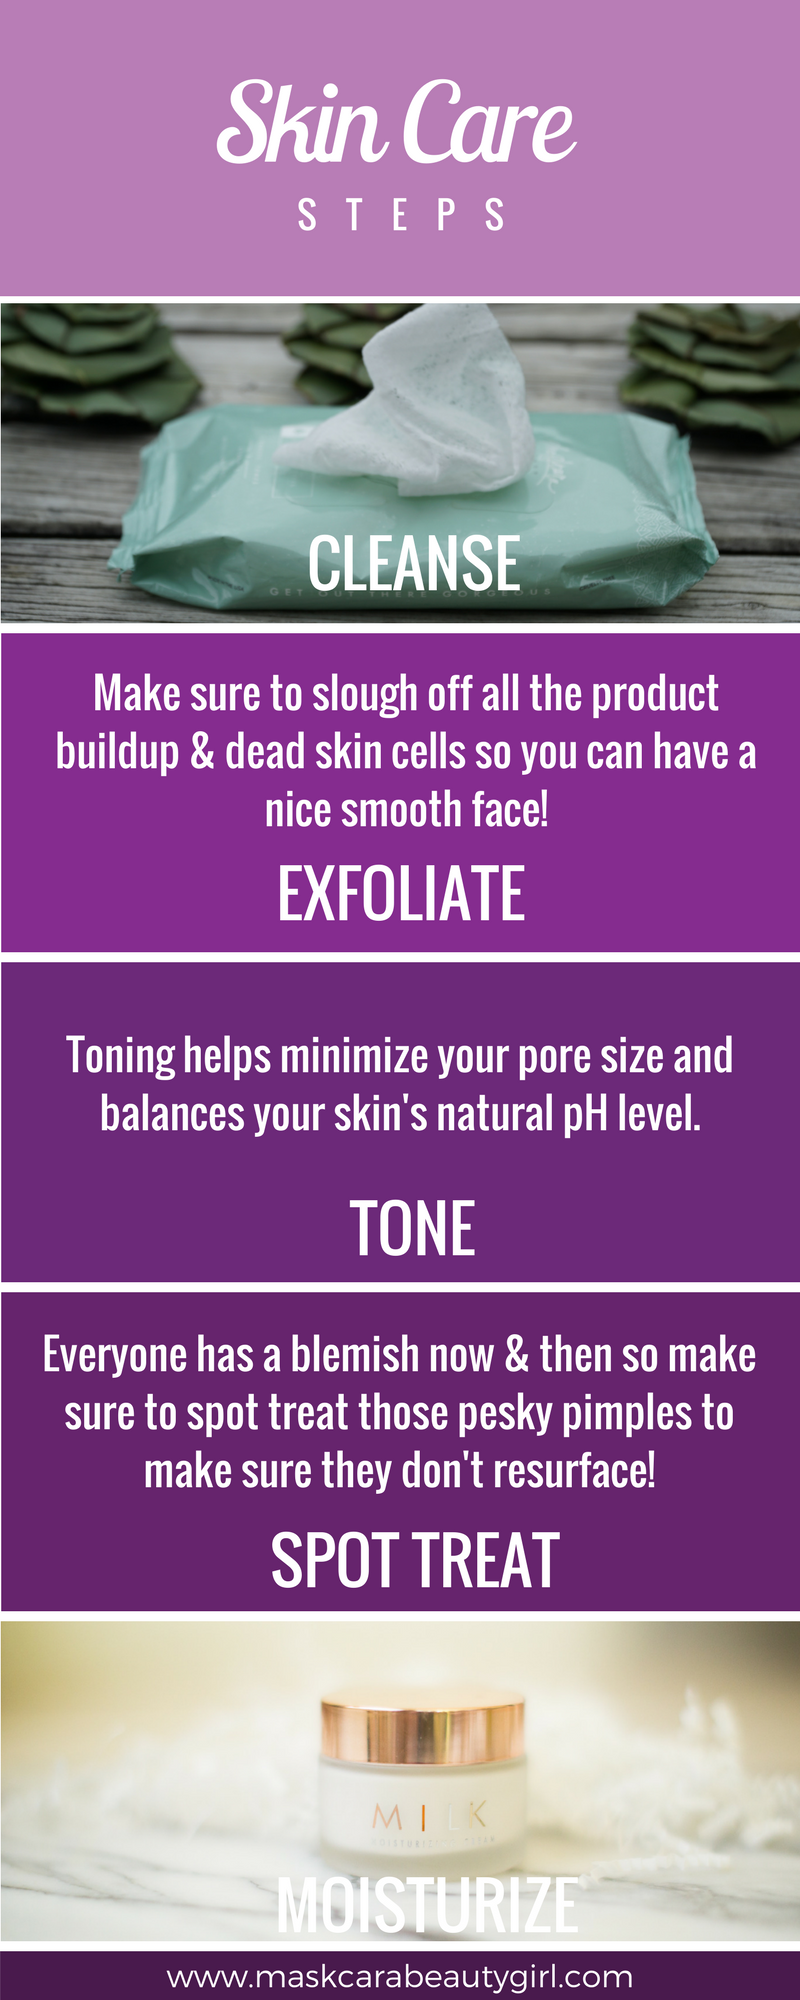 5 Essential Skin Care Steps for any woman with www.maskcarabeautygirl.com, learn how our Maskcara Beauty Girl aesthetician takes care of her skin daily.